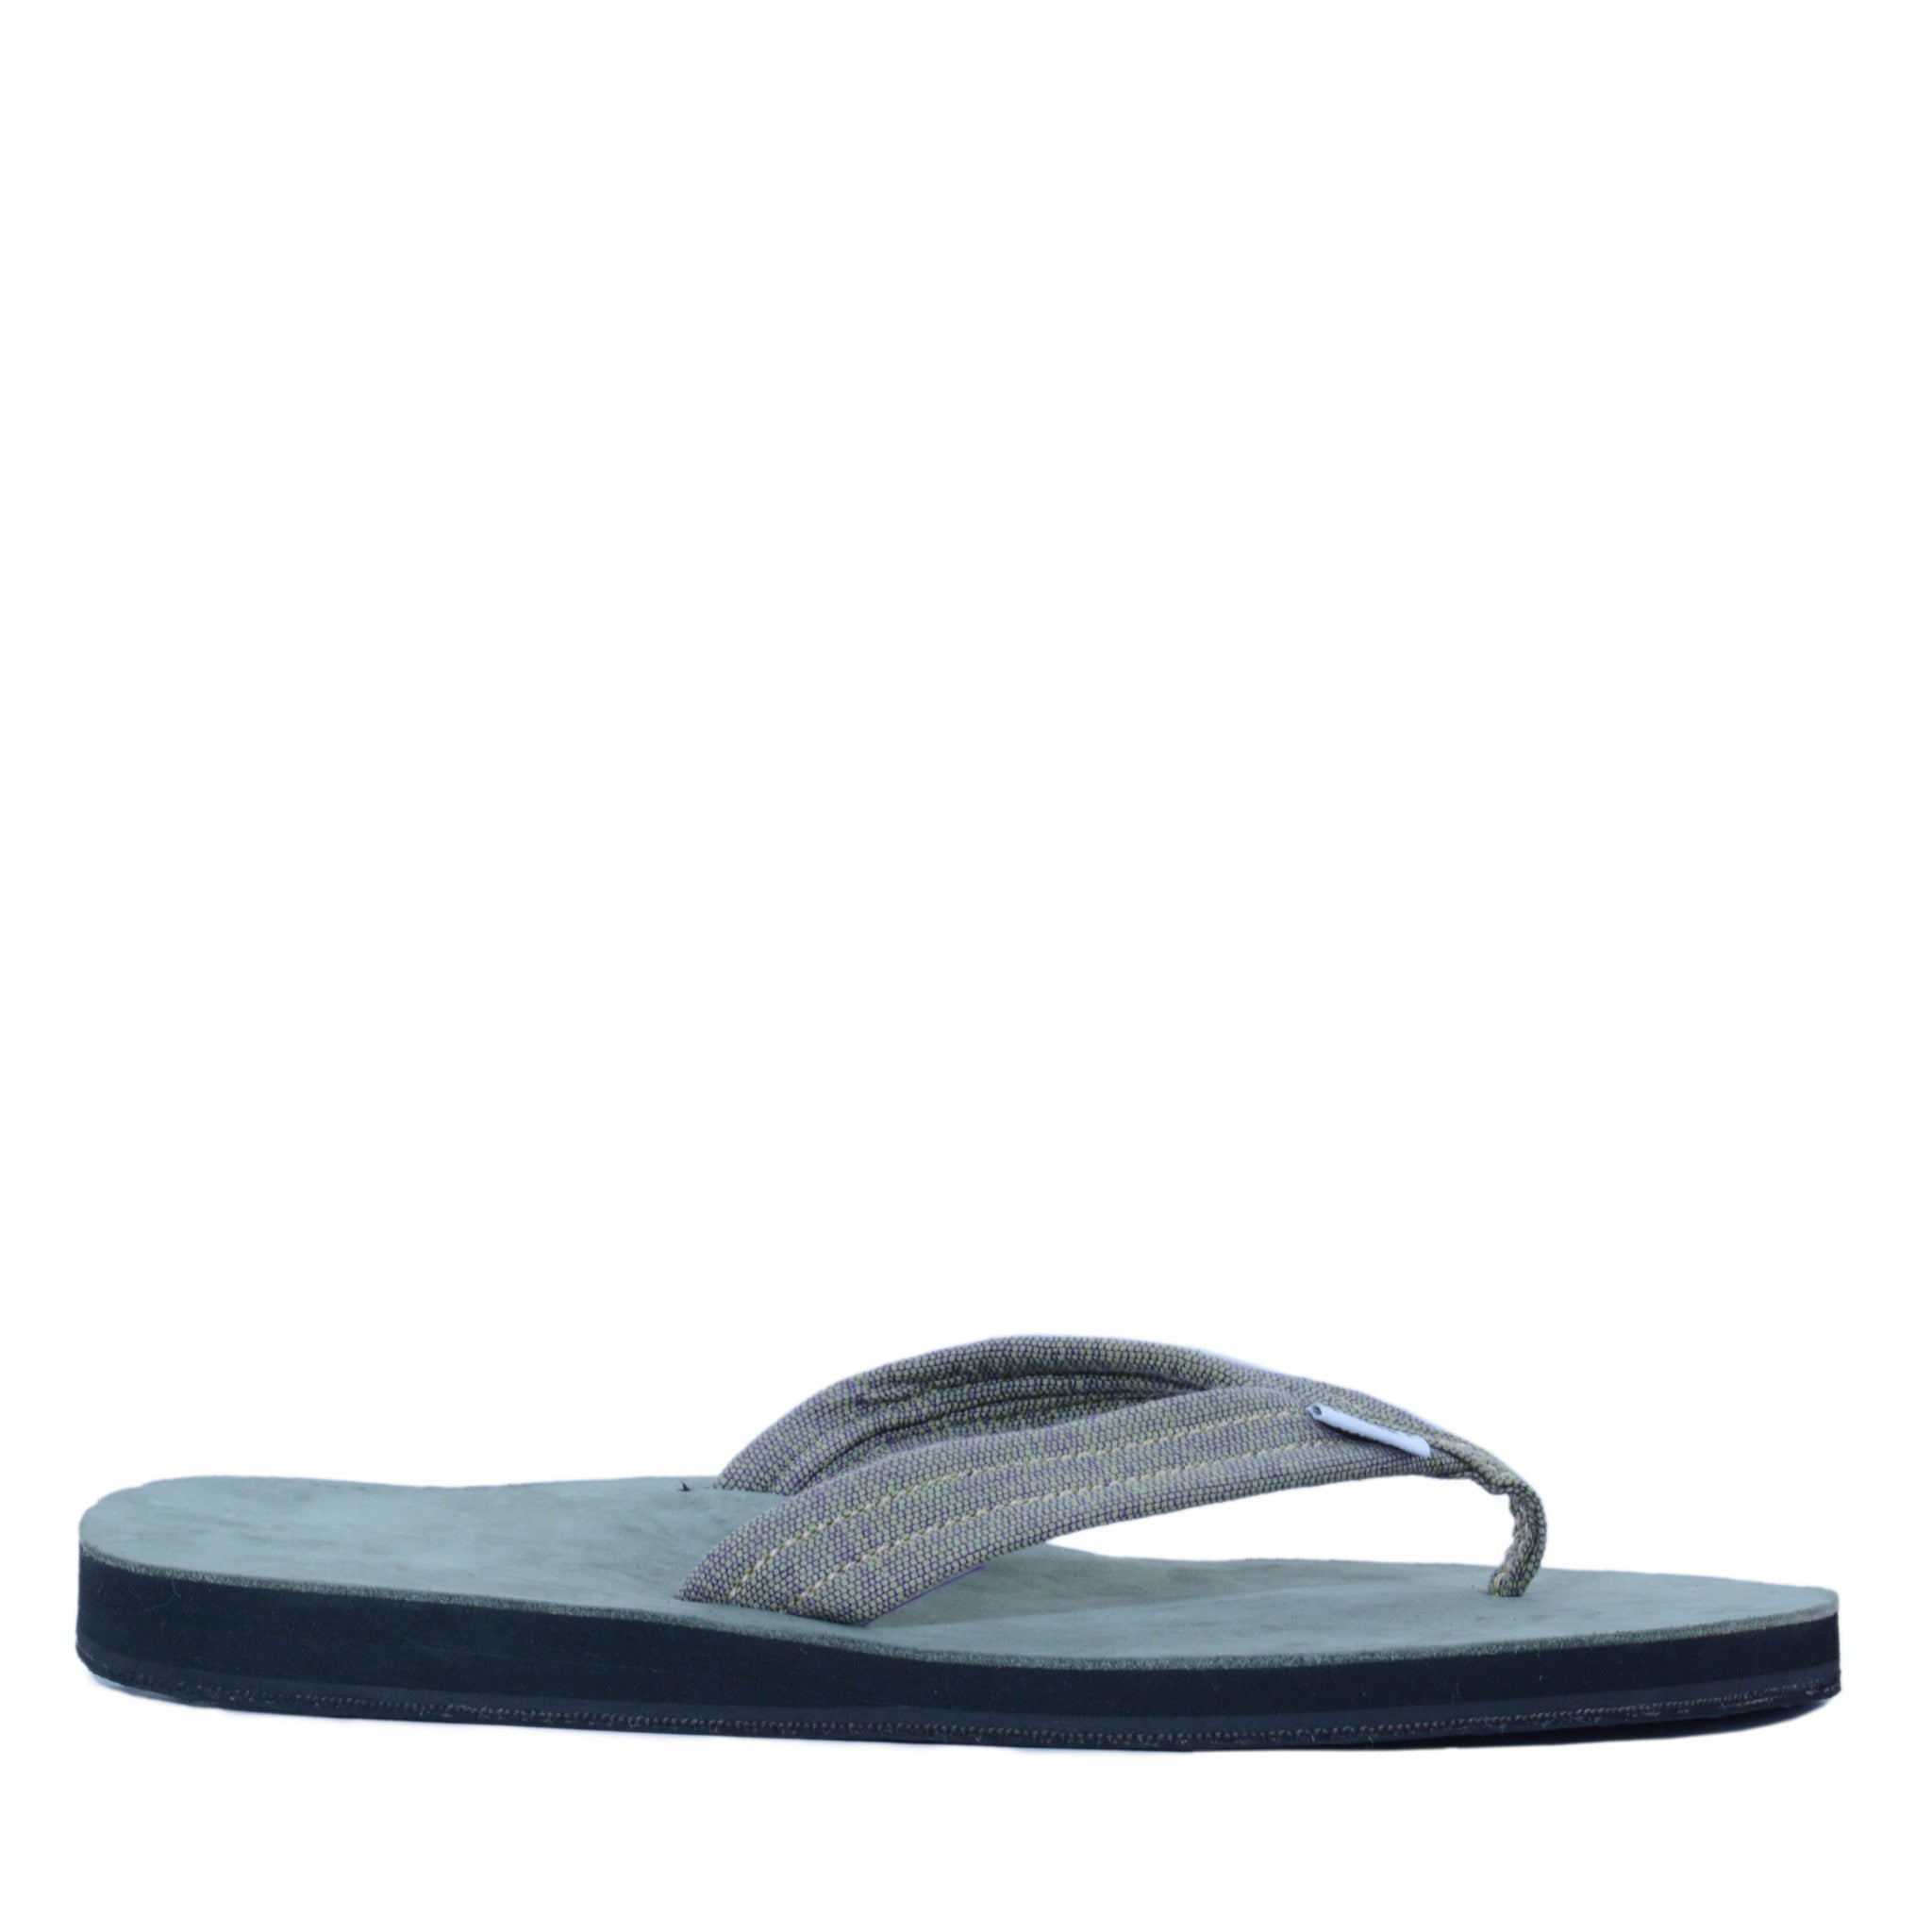 solerebels Grey nuDEAL mSh 2 Sandals